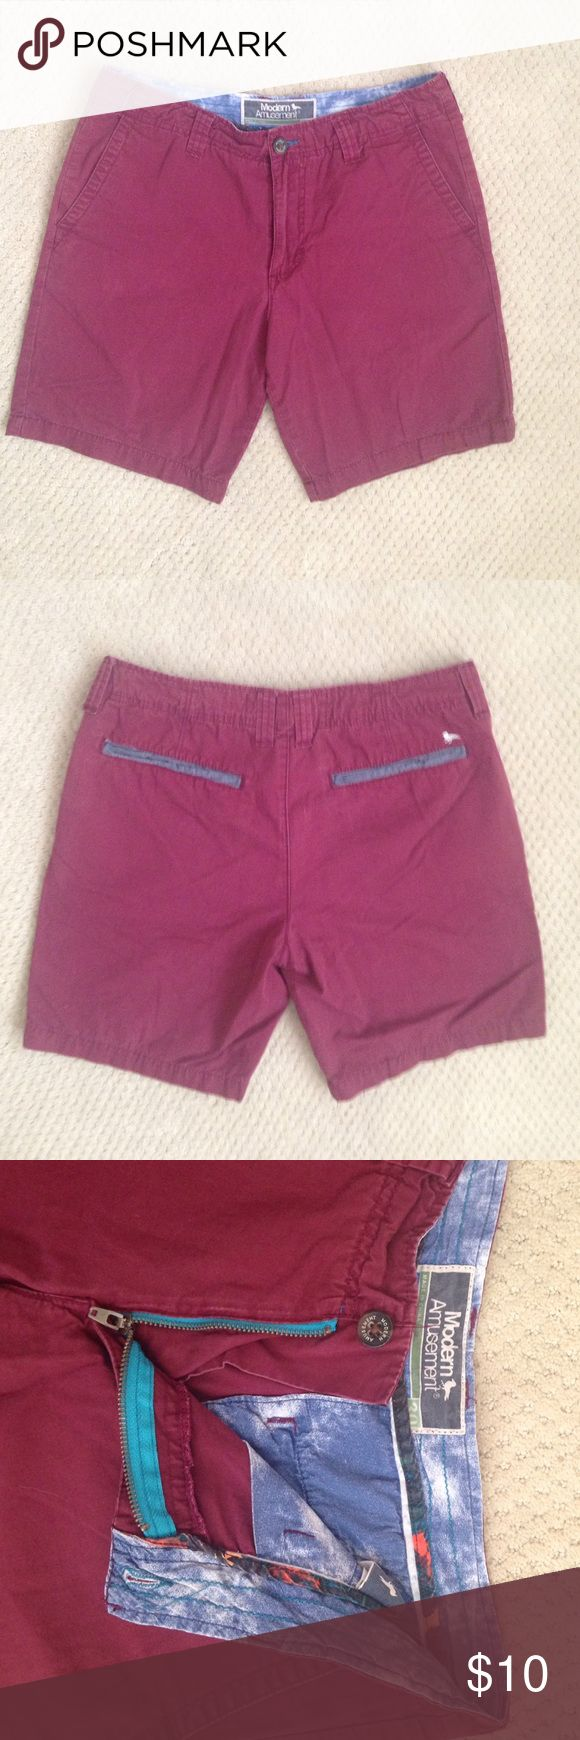 Men's Maroon Shorts Maroon colored shorts for men that reach about mid-thigh. Waist size 30. Good condition. Modern Amusement  Shorts Flat Front